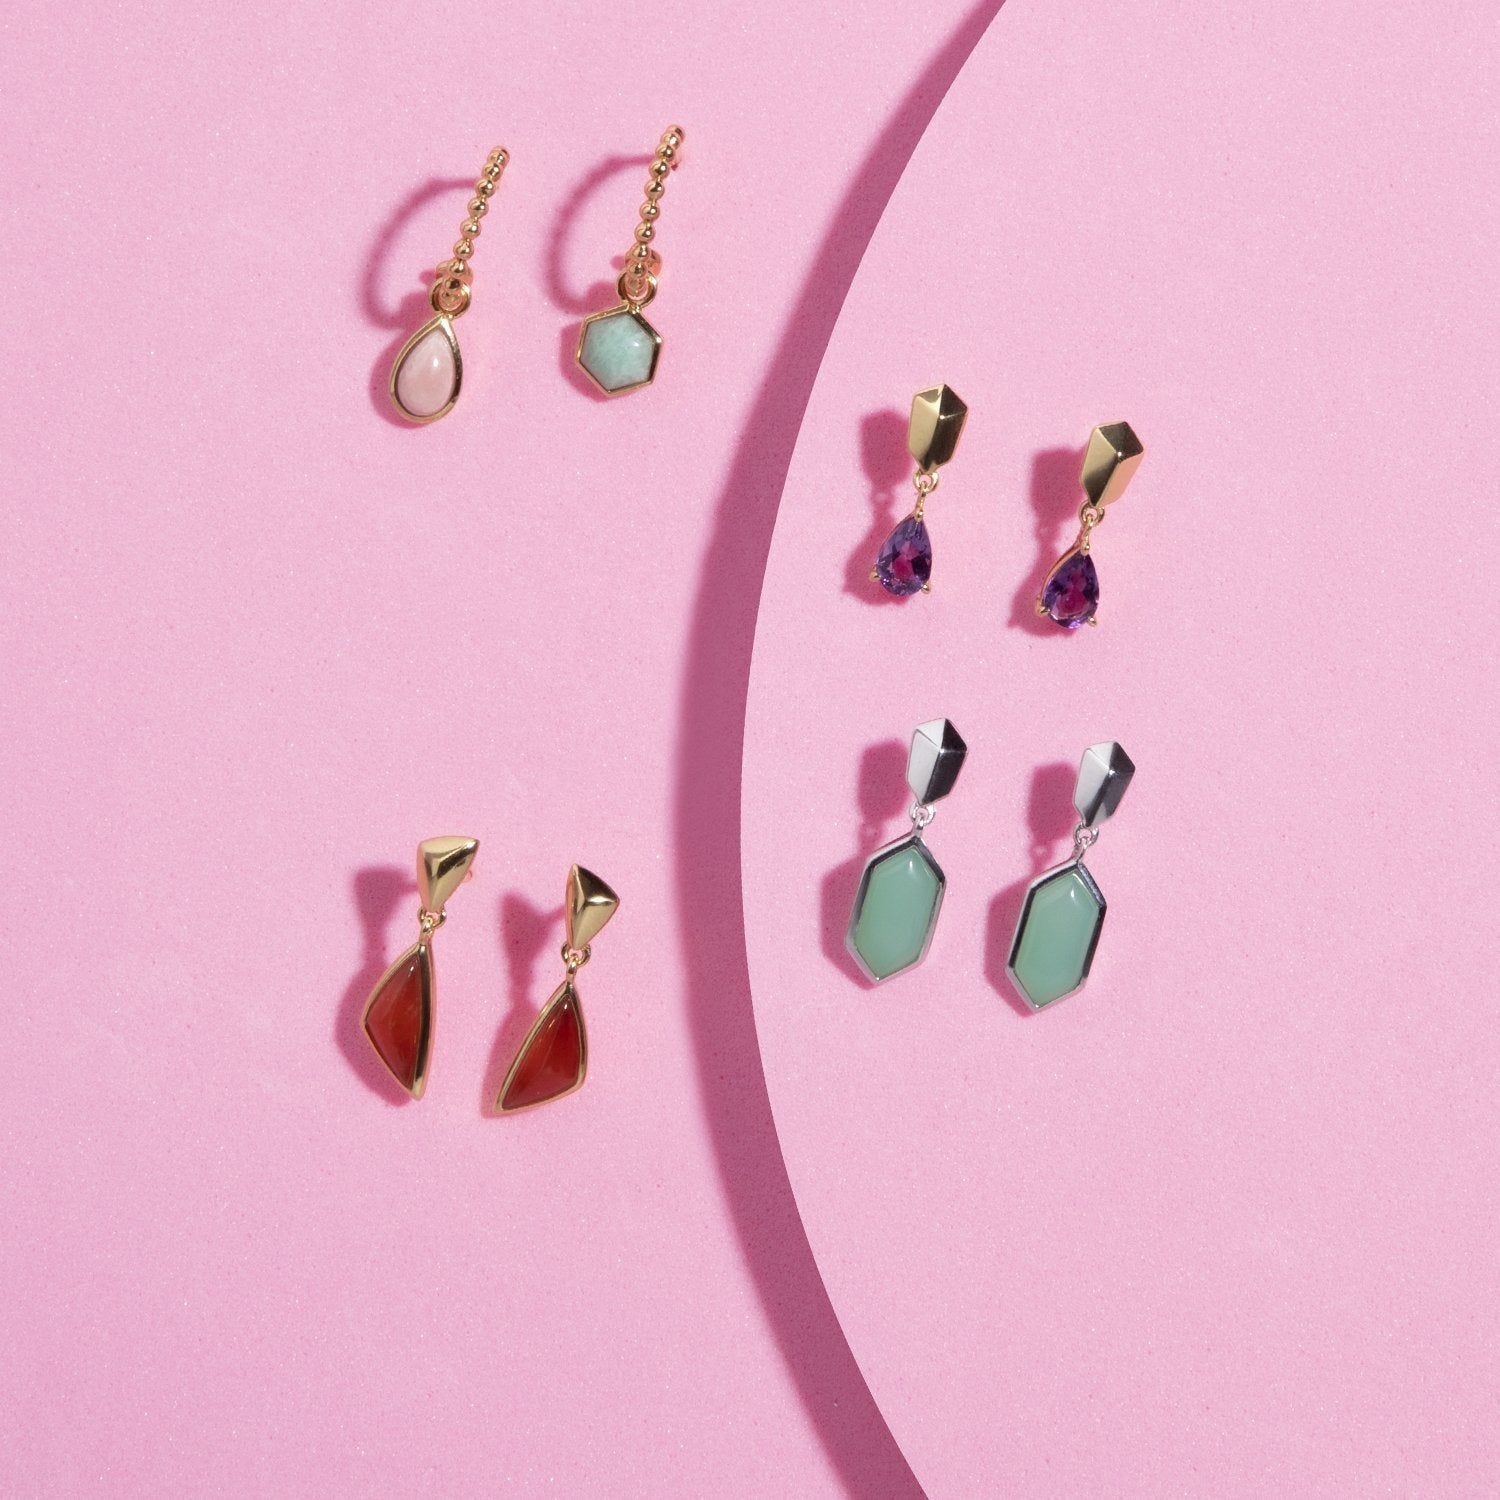 Micro Statement Jewelry | Mismatched earrings with gemstones